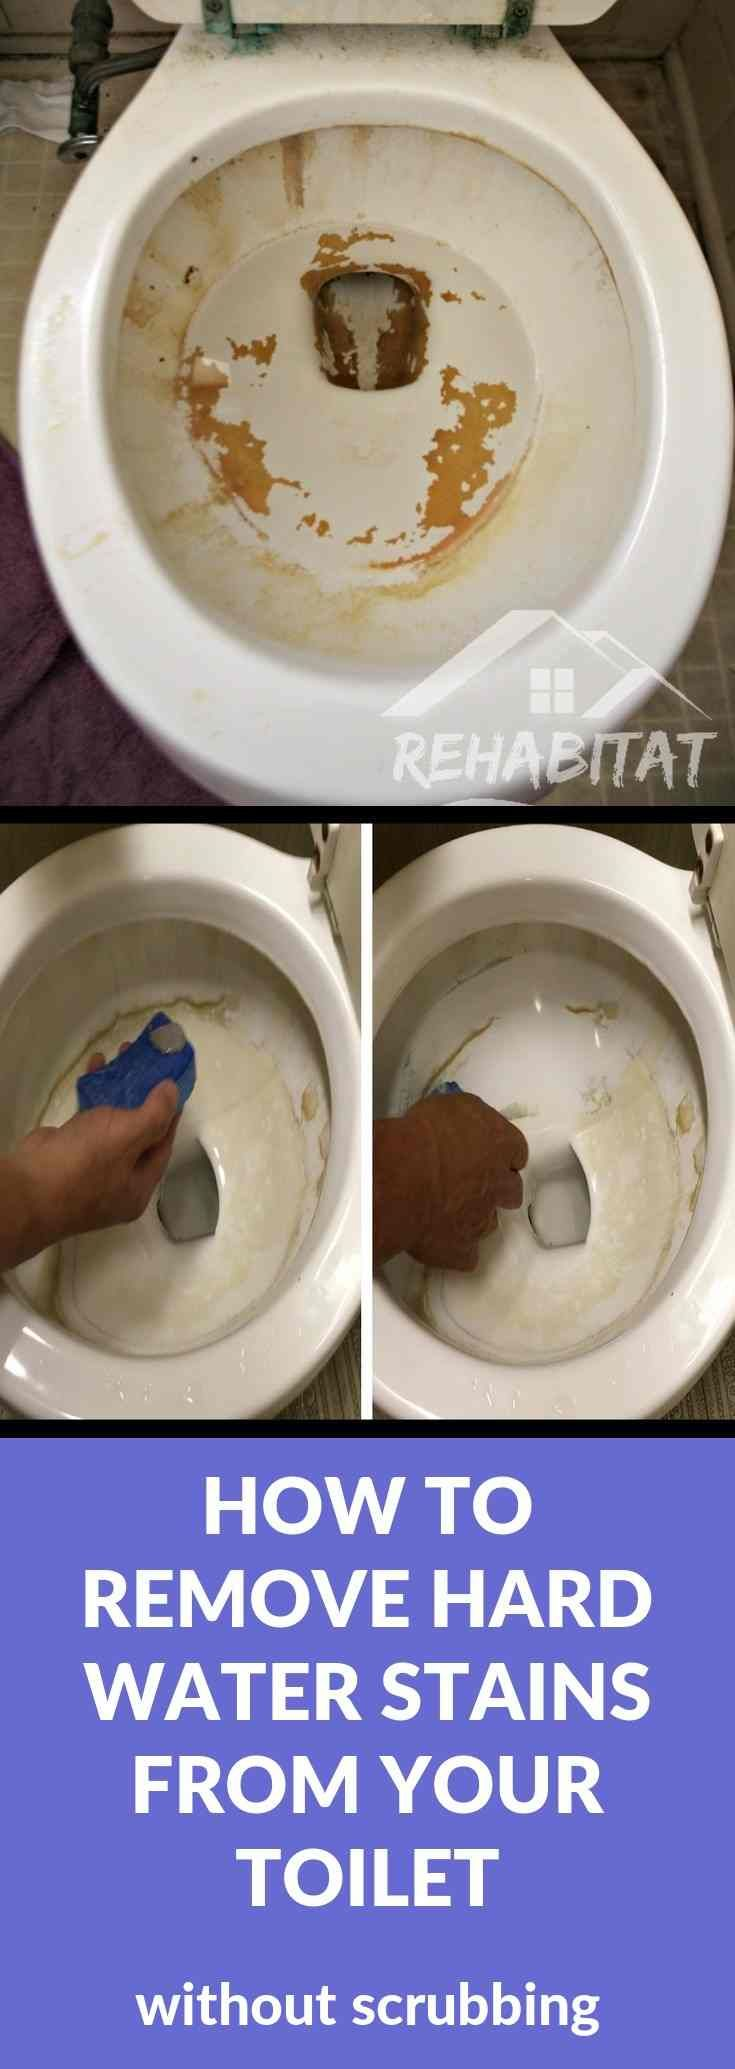 HOW TO REMOVE HARD WATER STAINS FROM TOILETS Hard water s